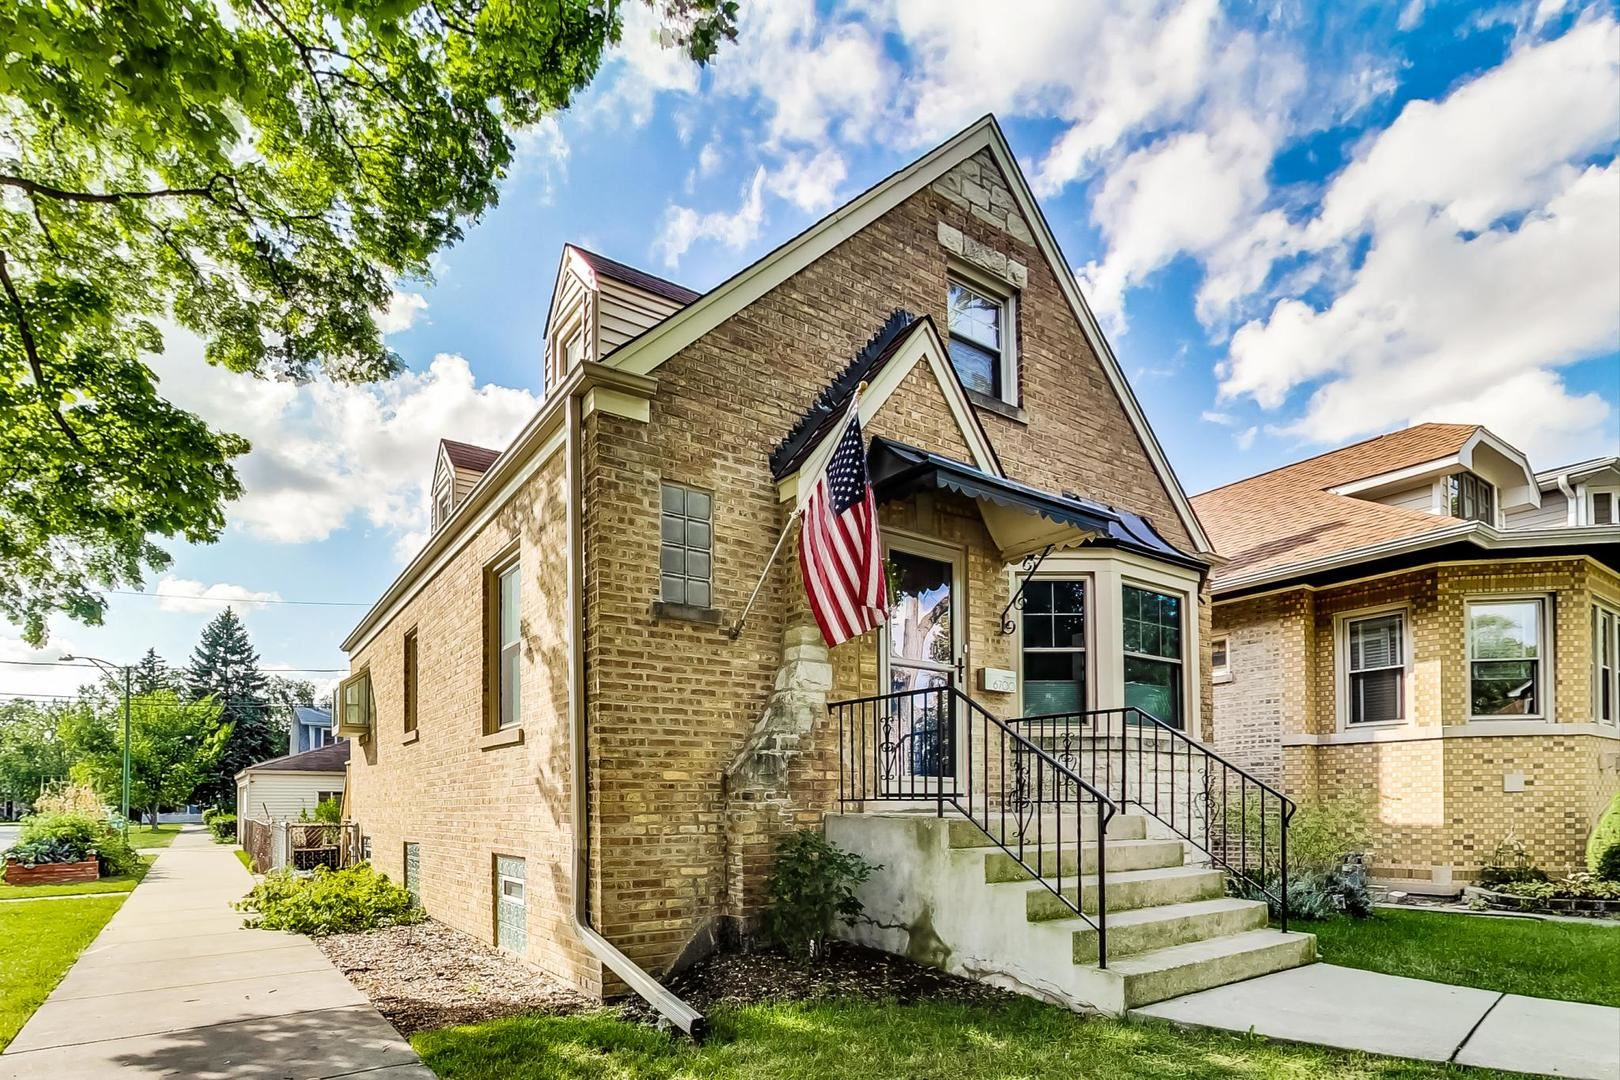 6700 N Odell Avenue, Chicago, IL 60631 - #: 11242156